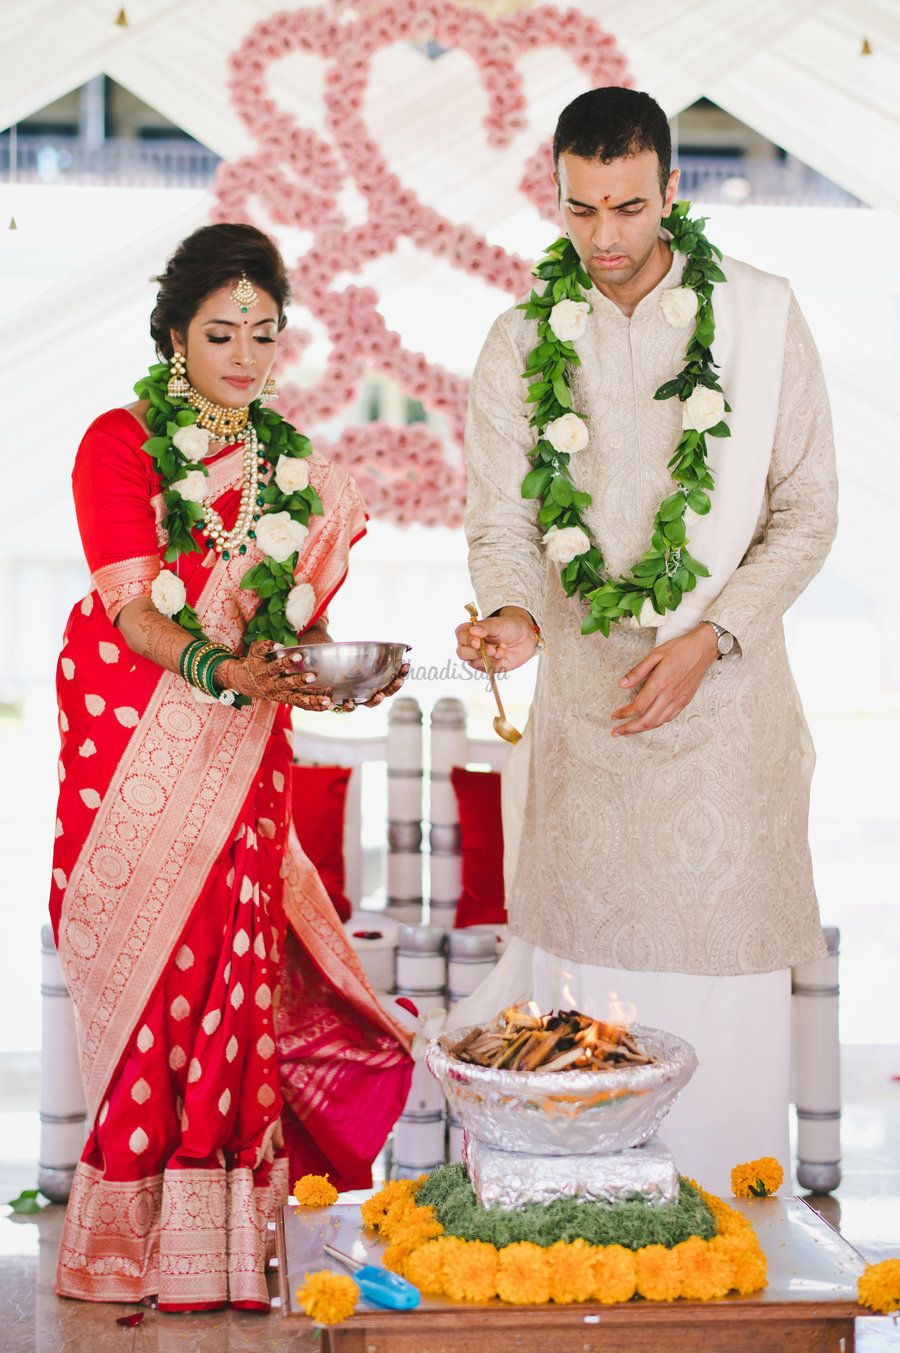 An Intimate Bali Wedding Where The Bride Wowed Us With Her Traditional Red Saree In 2021 Red Saree Wedding Saree Wedding Bali Wedding